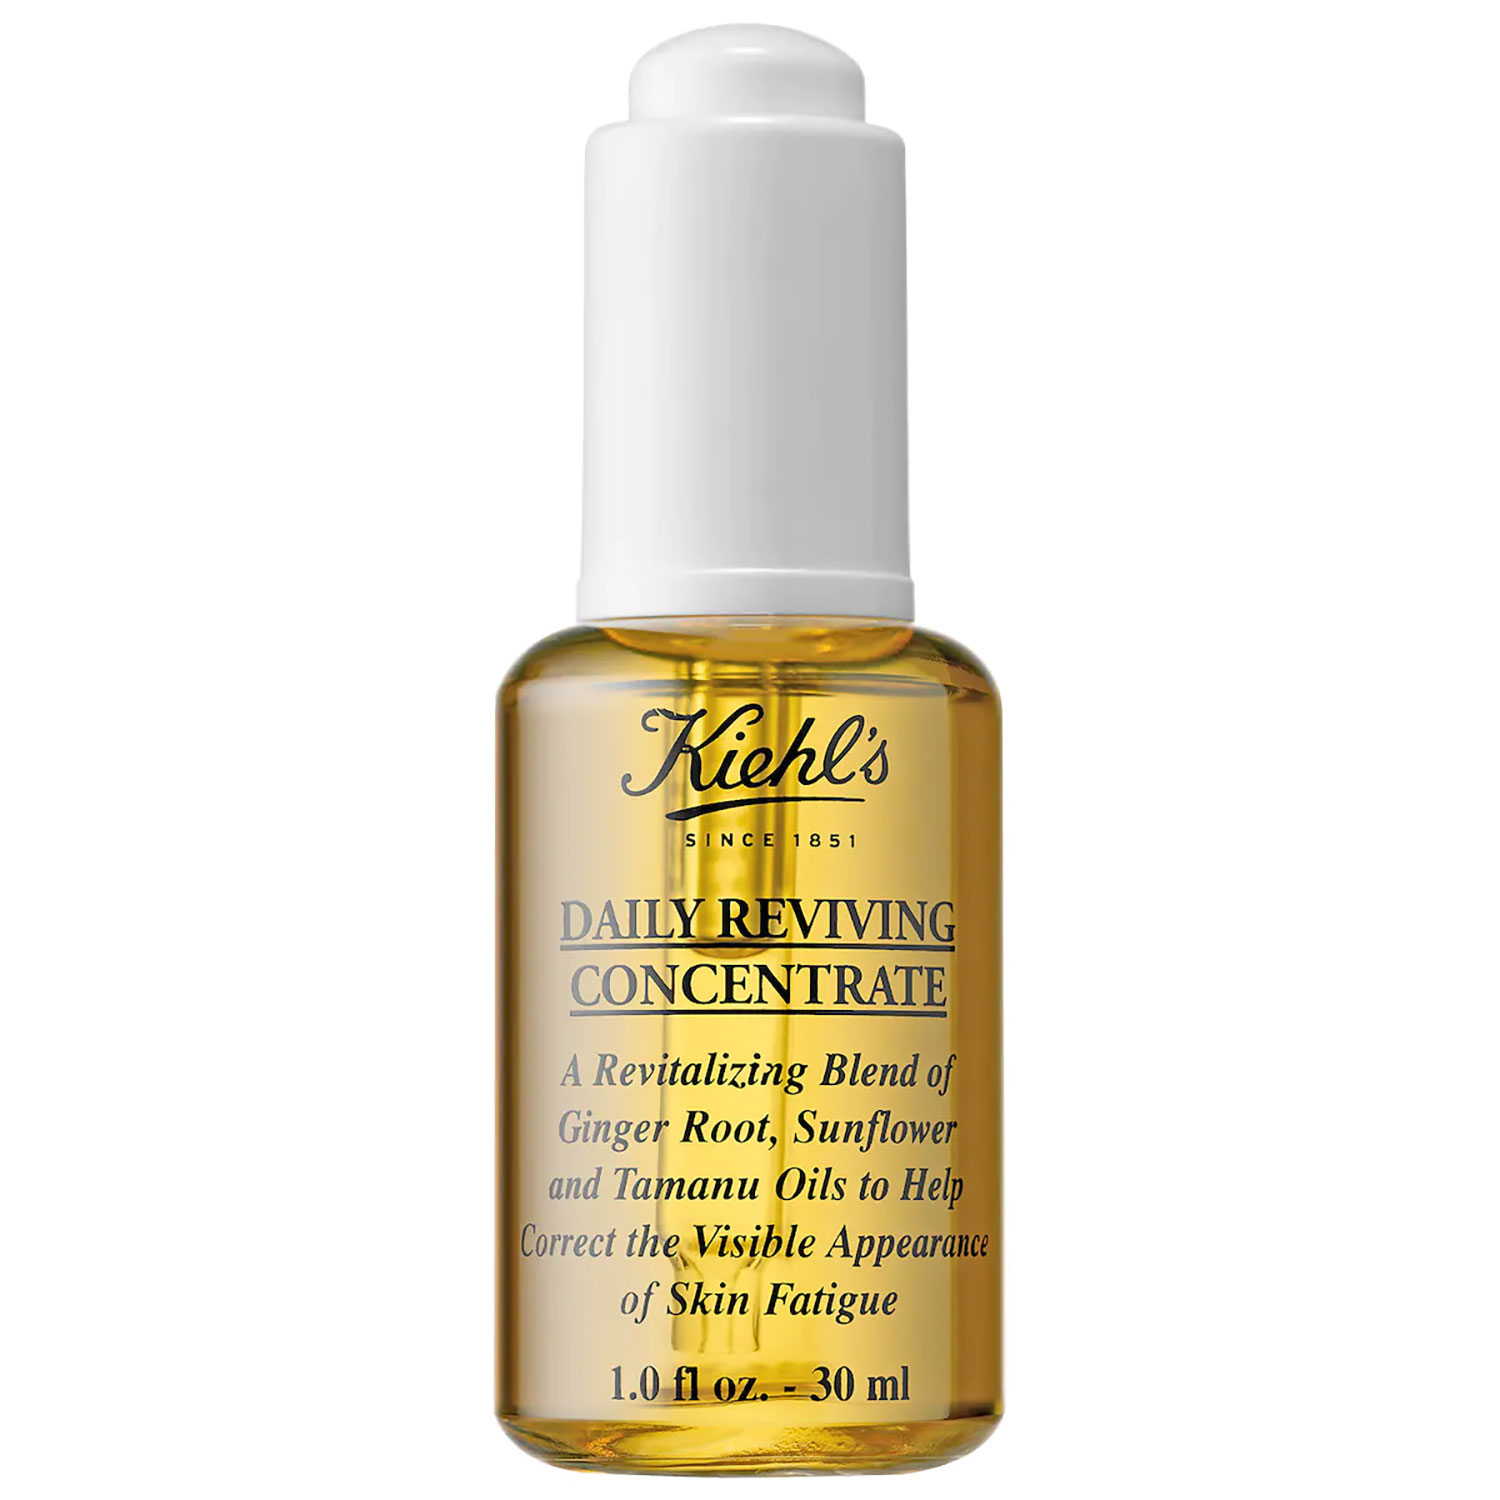 sephora-kiehls-daily-reviving-concentrate